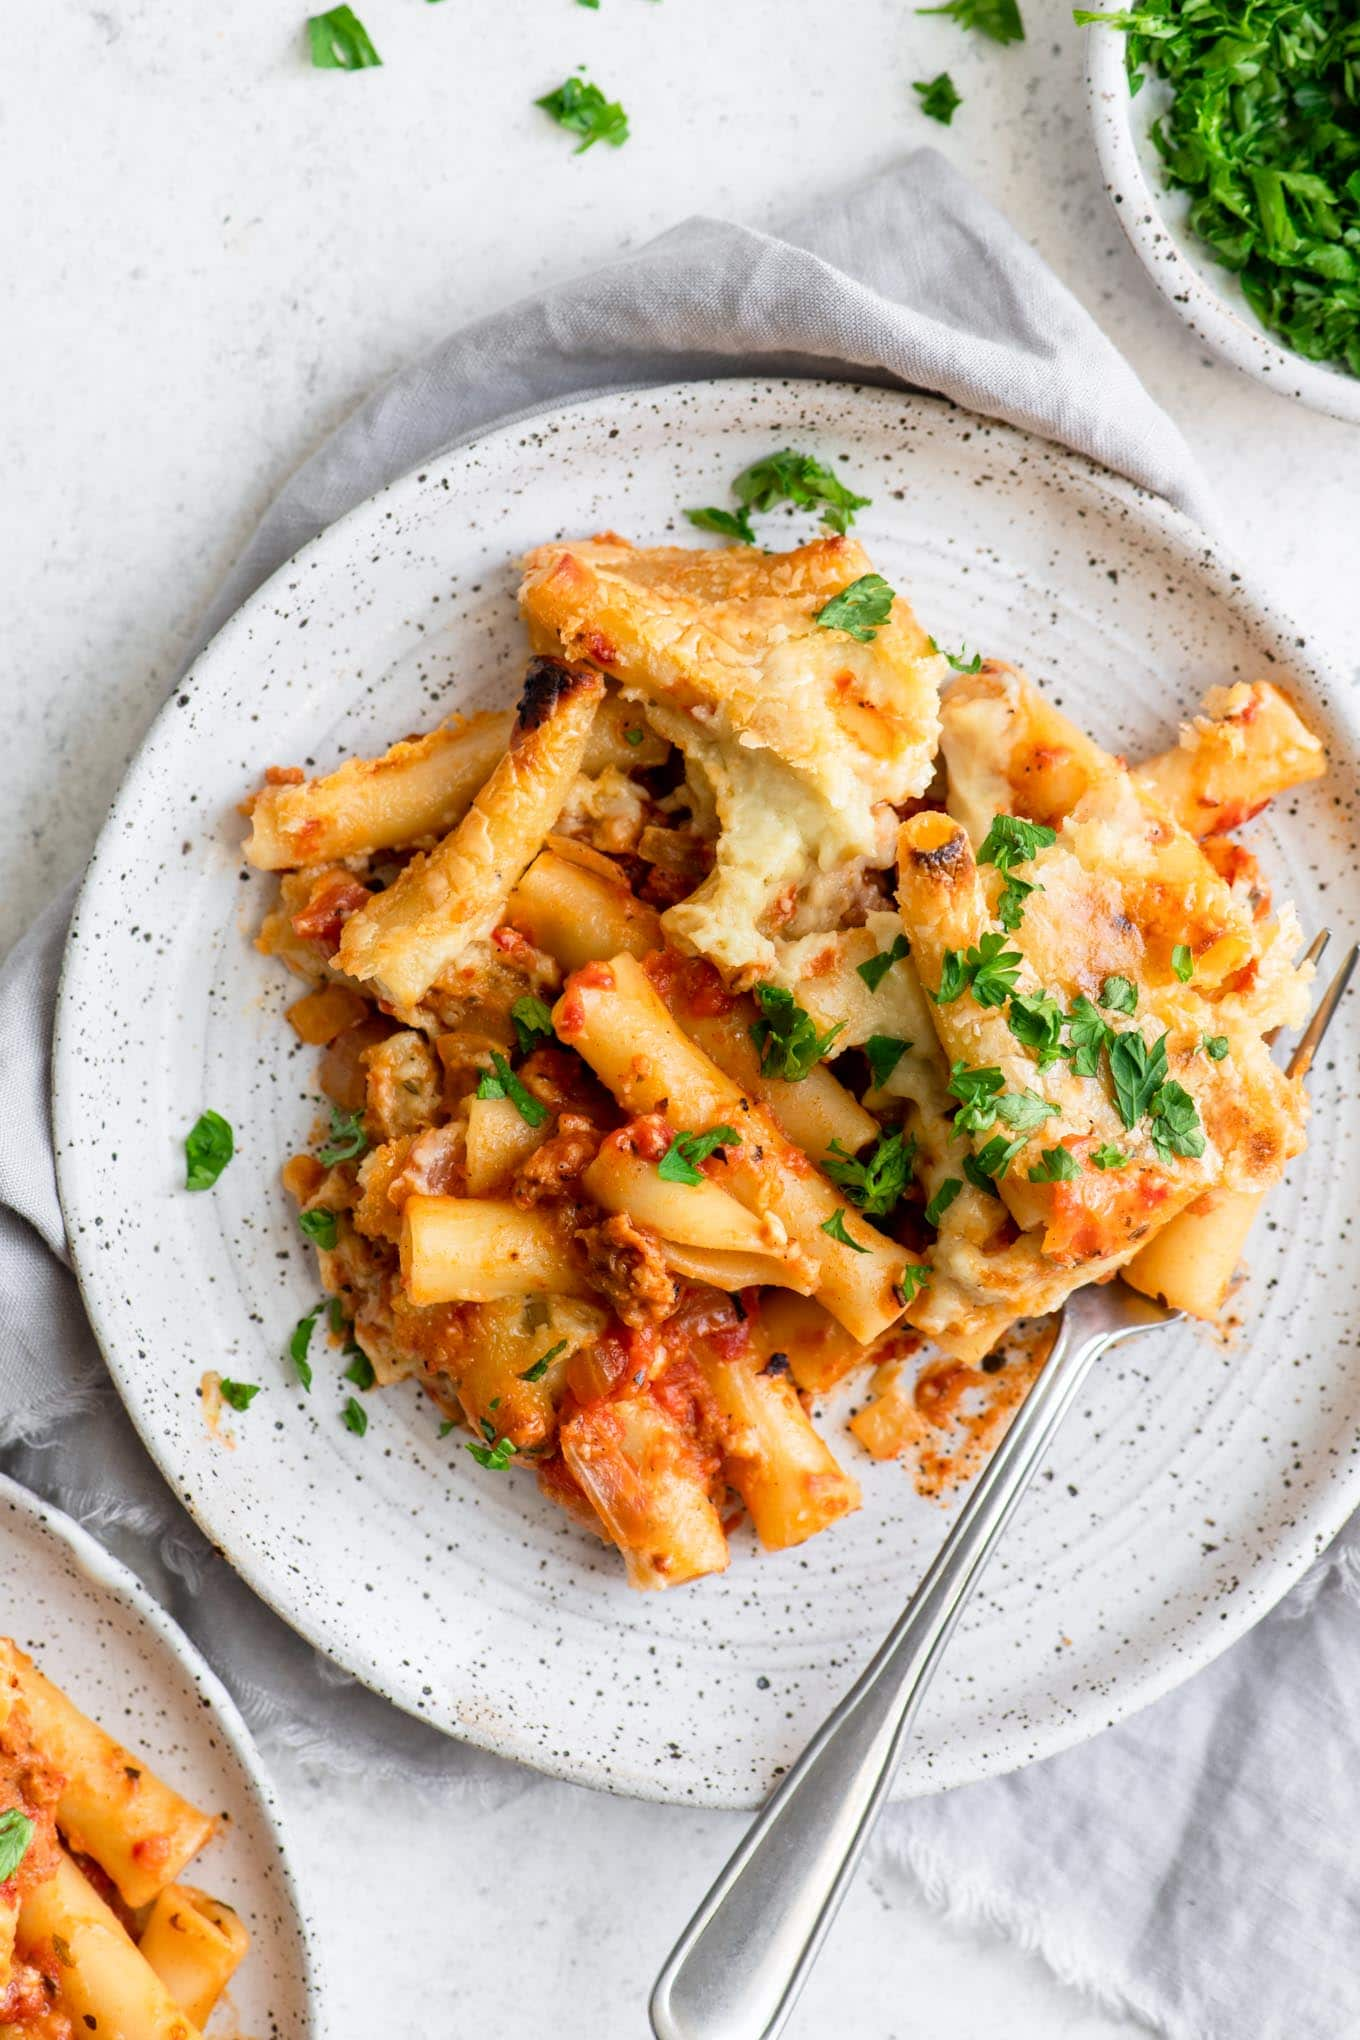 vegan baked ziti on a plate